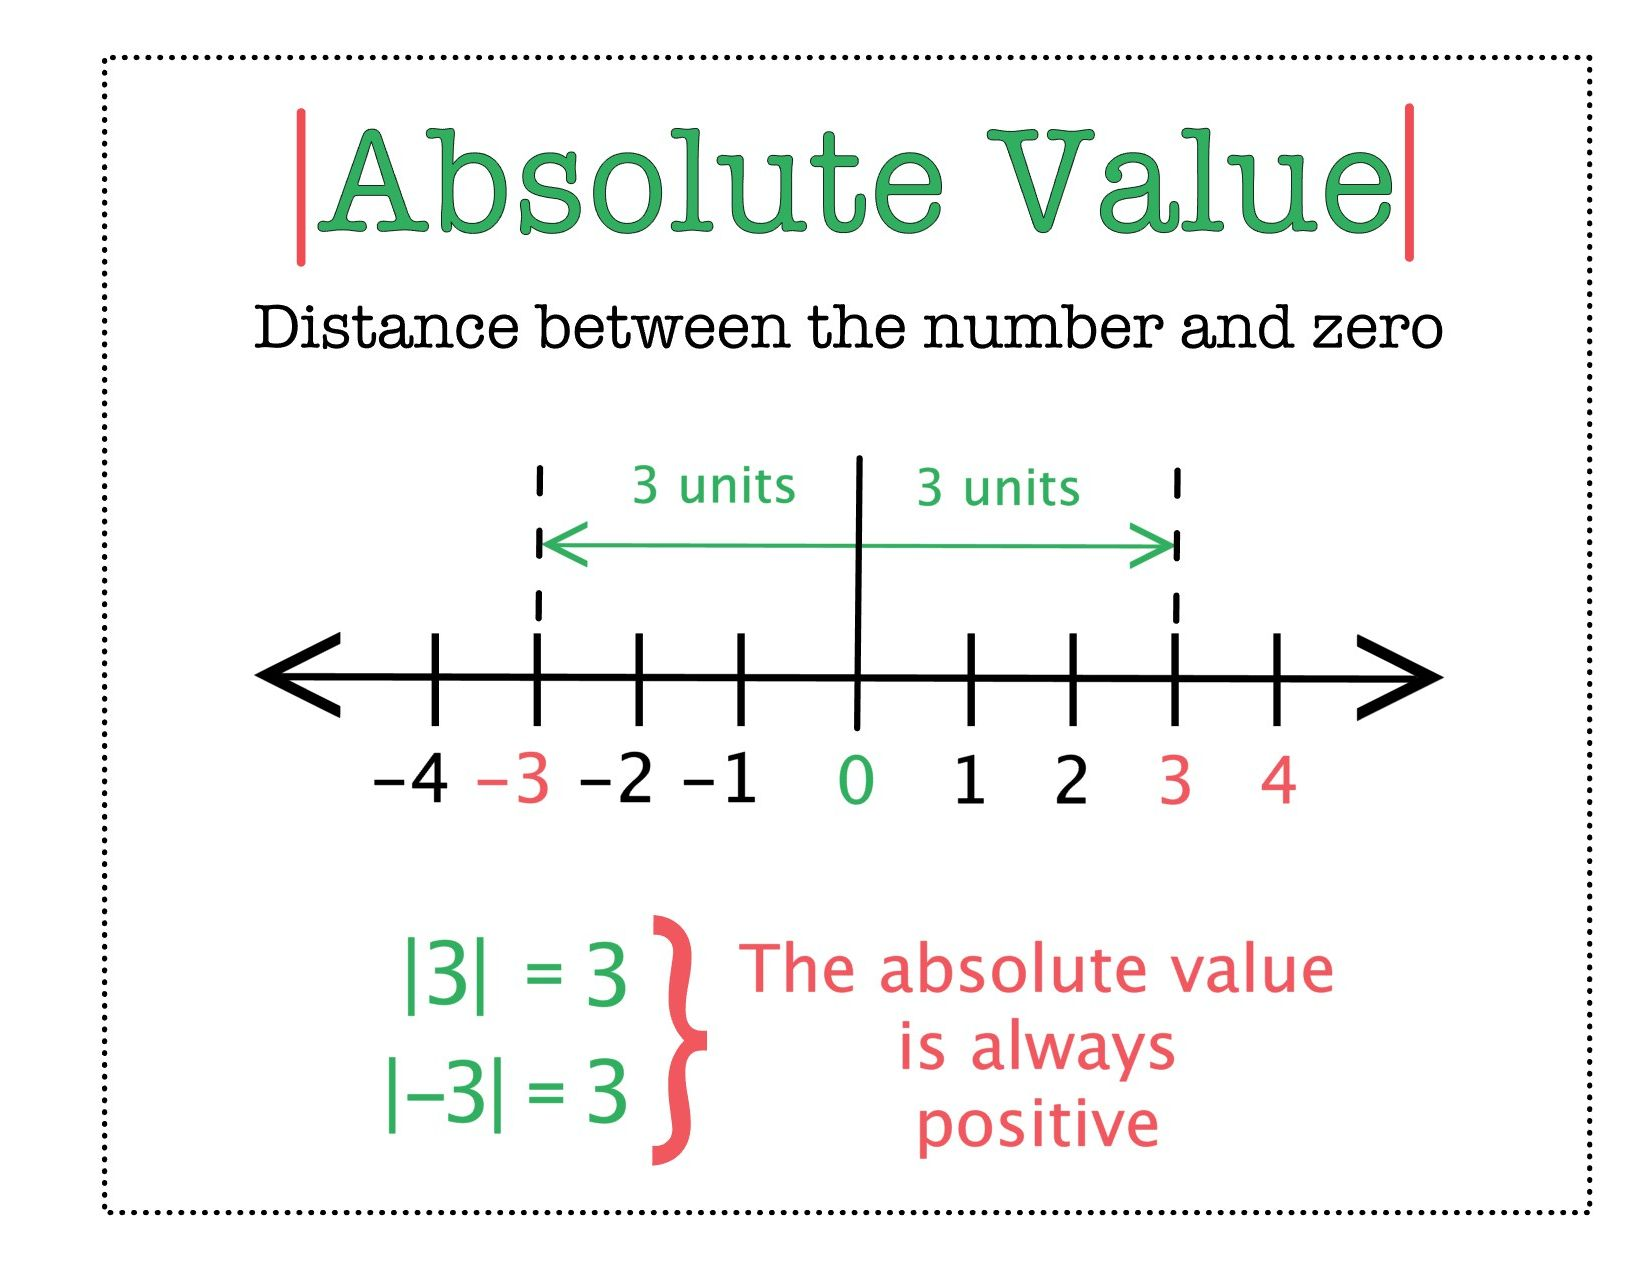 Absolute Value 6th Grade Math Distance Learning In 2020 Distance Learning Online Teaching Teaching Resources